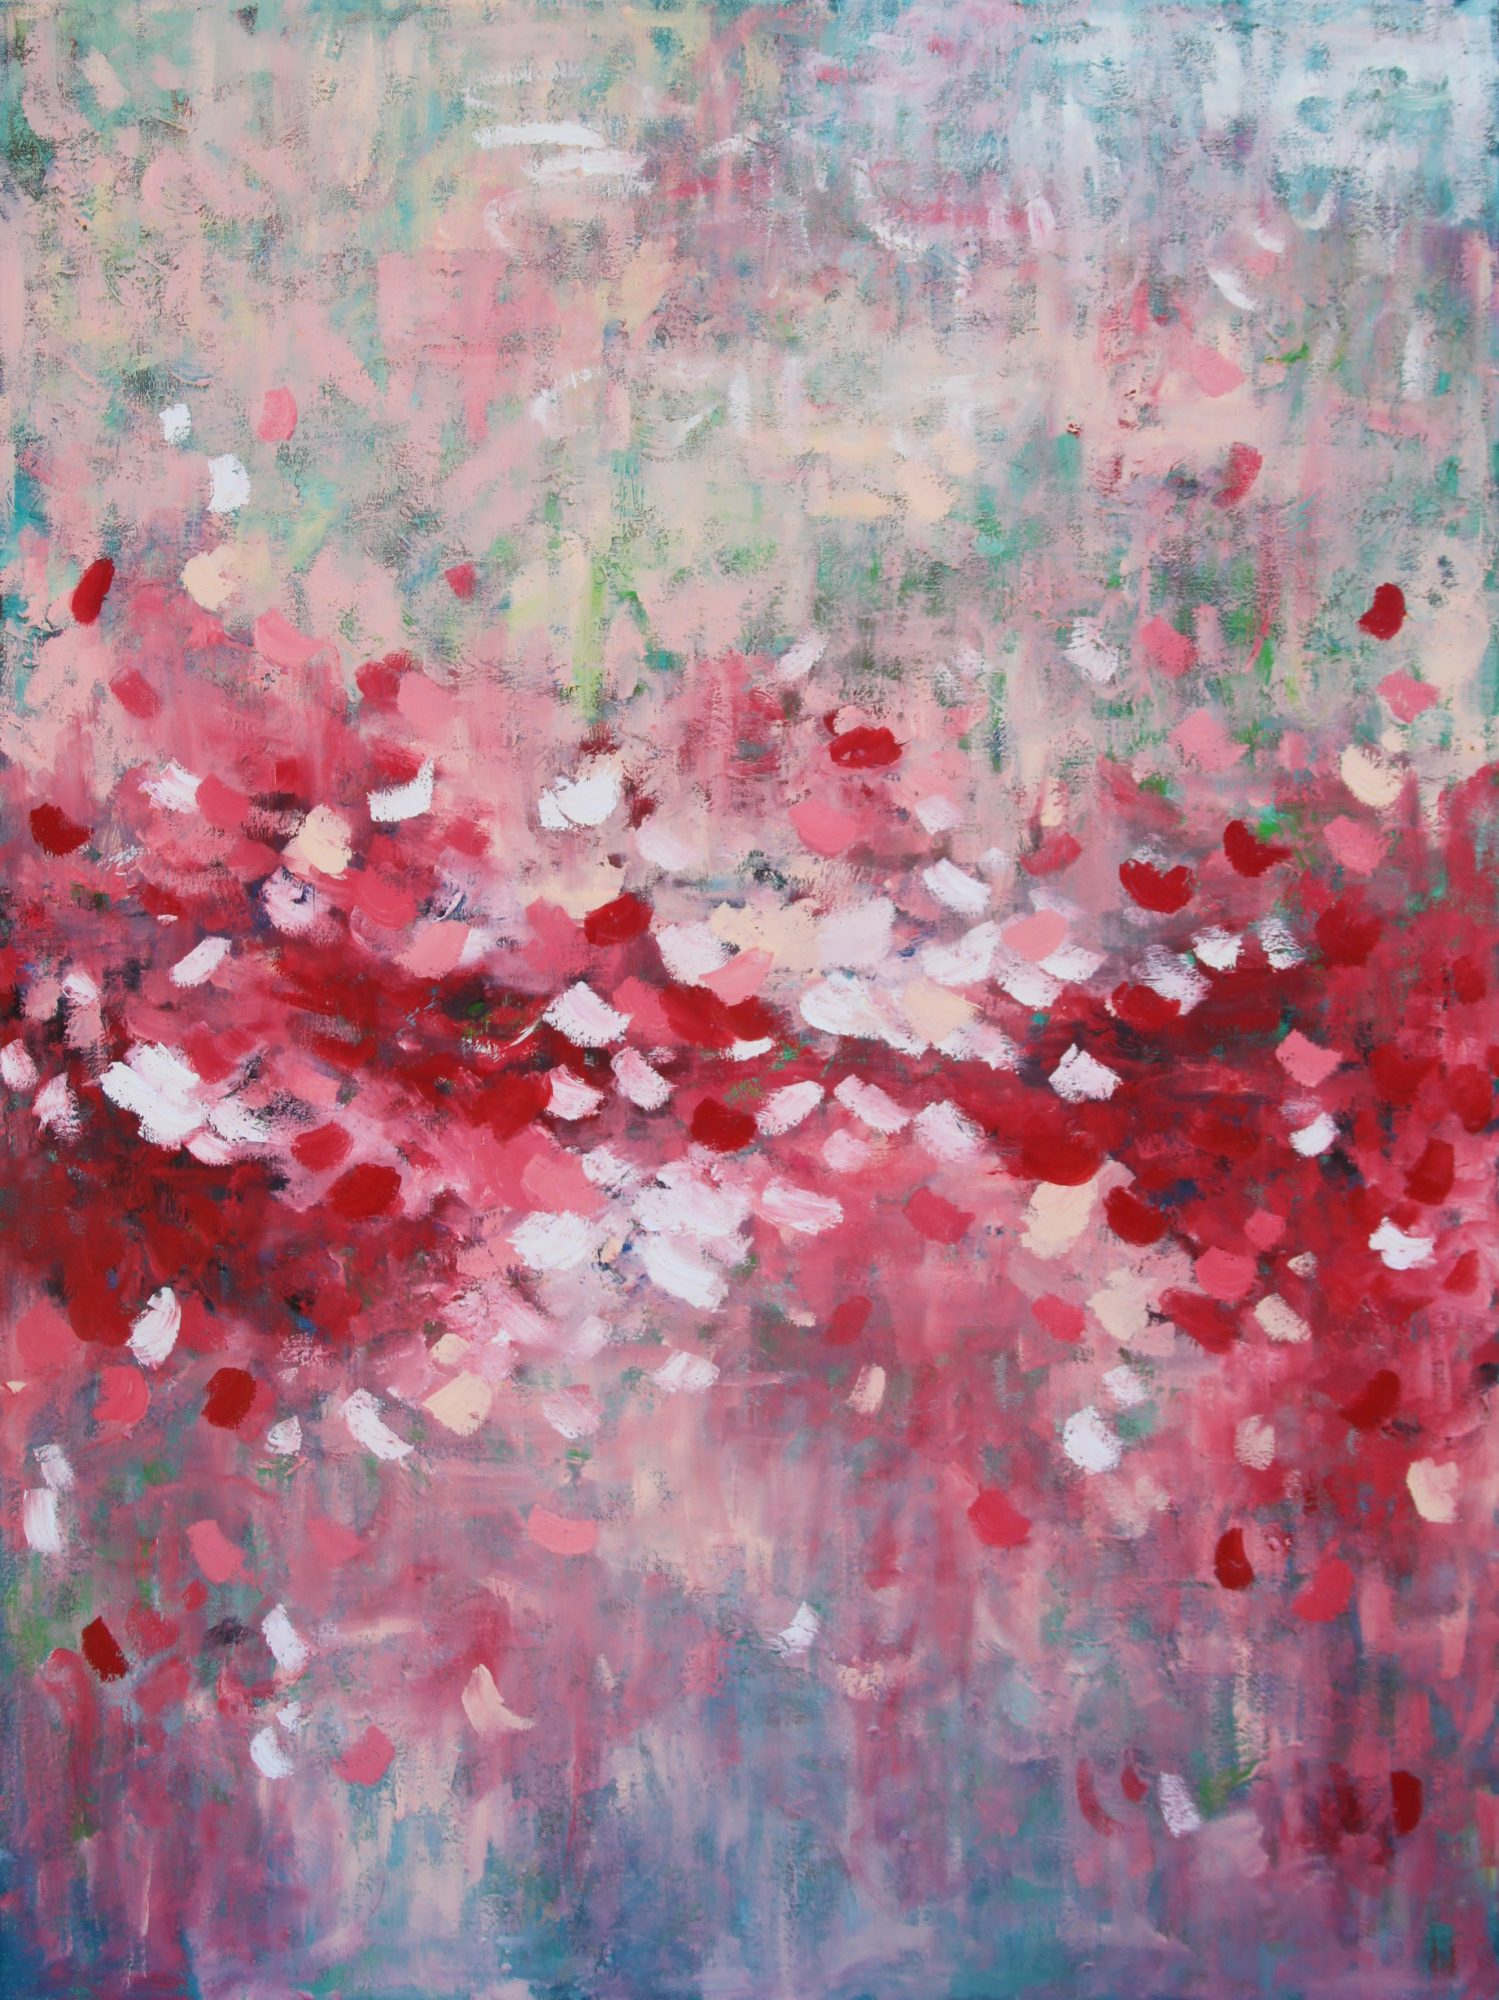 belinda-nadwie-art-abstract-artist-painting-a rose by any other name 1